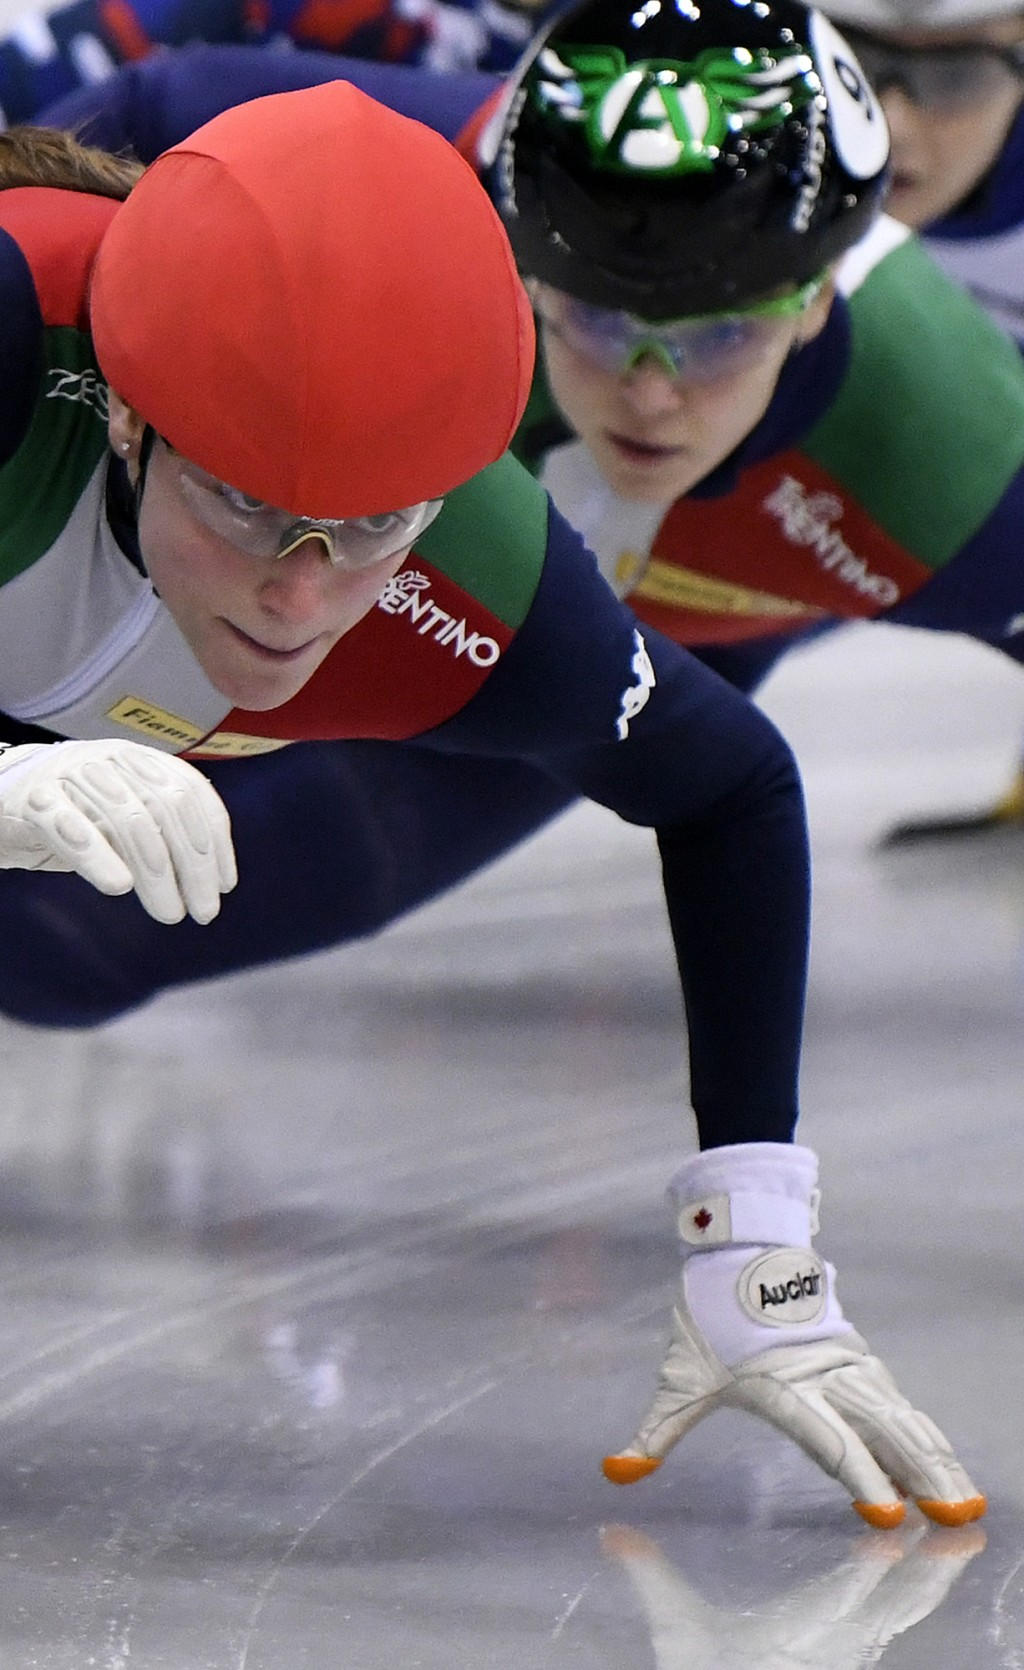 Winner Martina Valcepina of Italy, left, competes in front of 2nd placed Arianna Fontana of Italy, right, during the women's 500 meters final race at